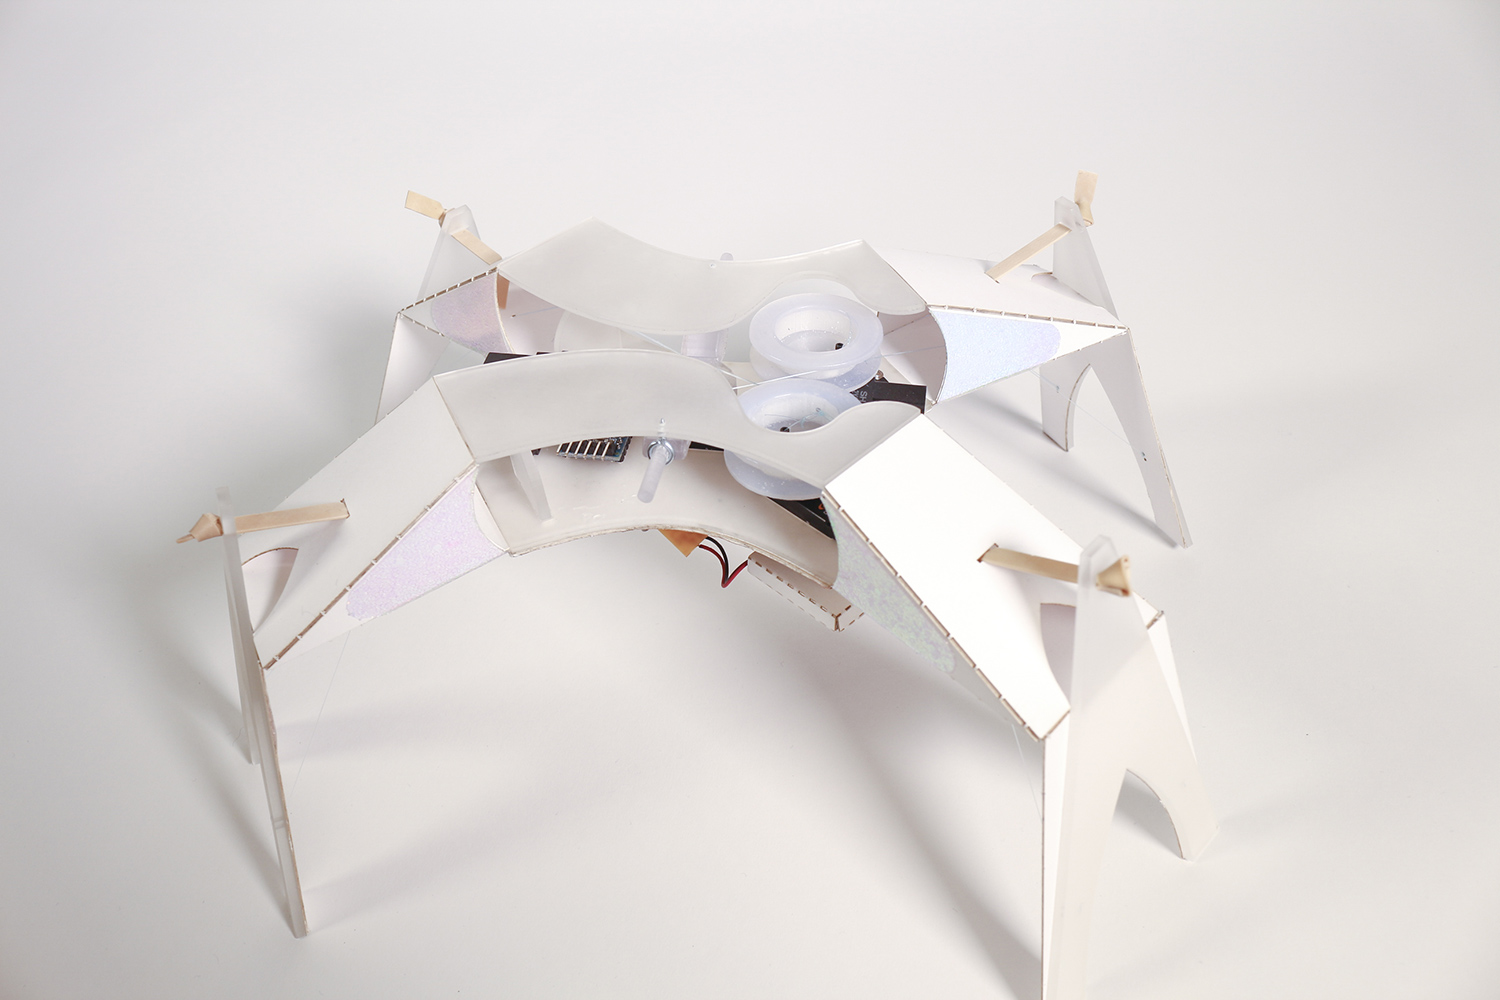 a paper robot perspective